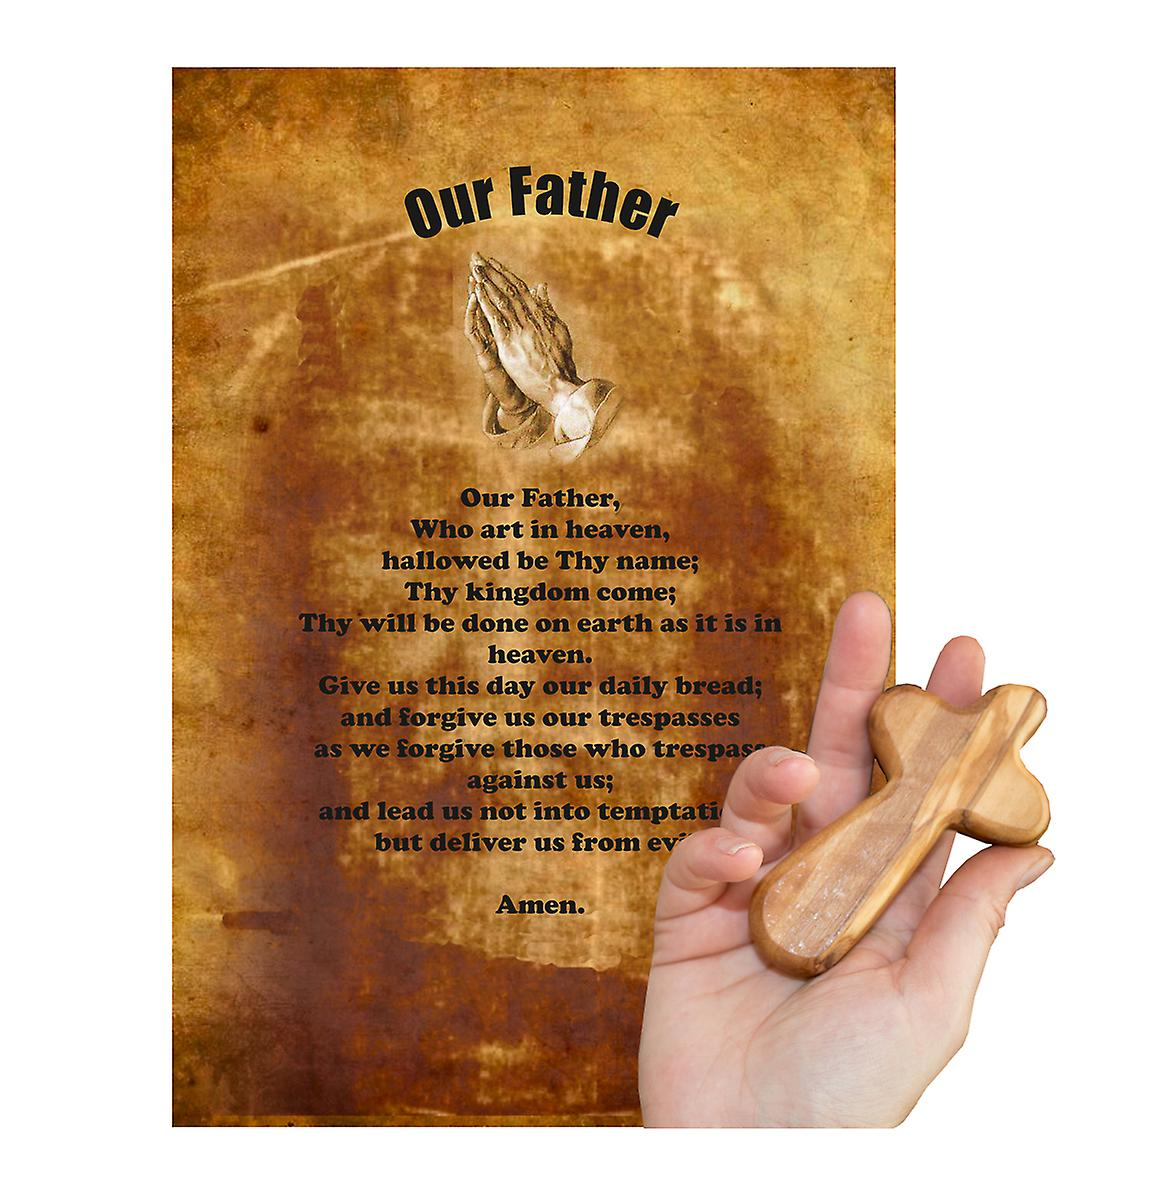 Our Father Carved Olive Wood Comfort Cross Religious Keepsake Hand Made In Bethlehem